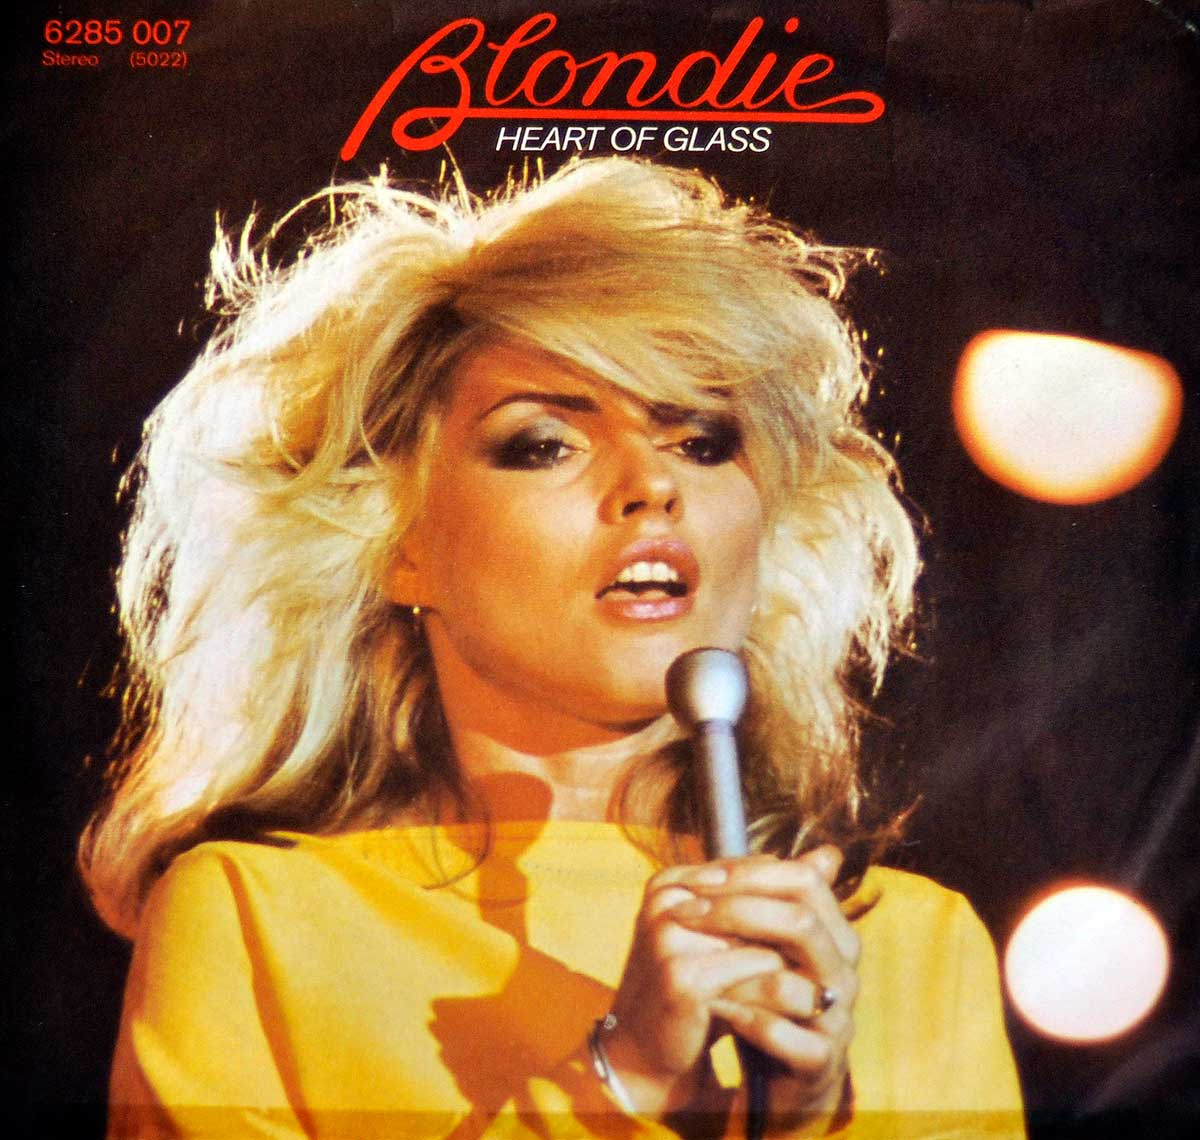 large photo of the album front cover of: BLONDIE HEART OF GLASS